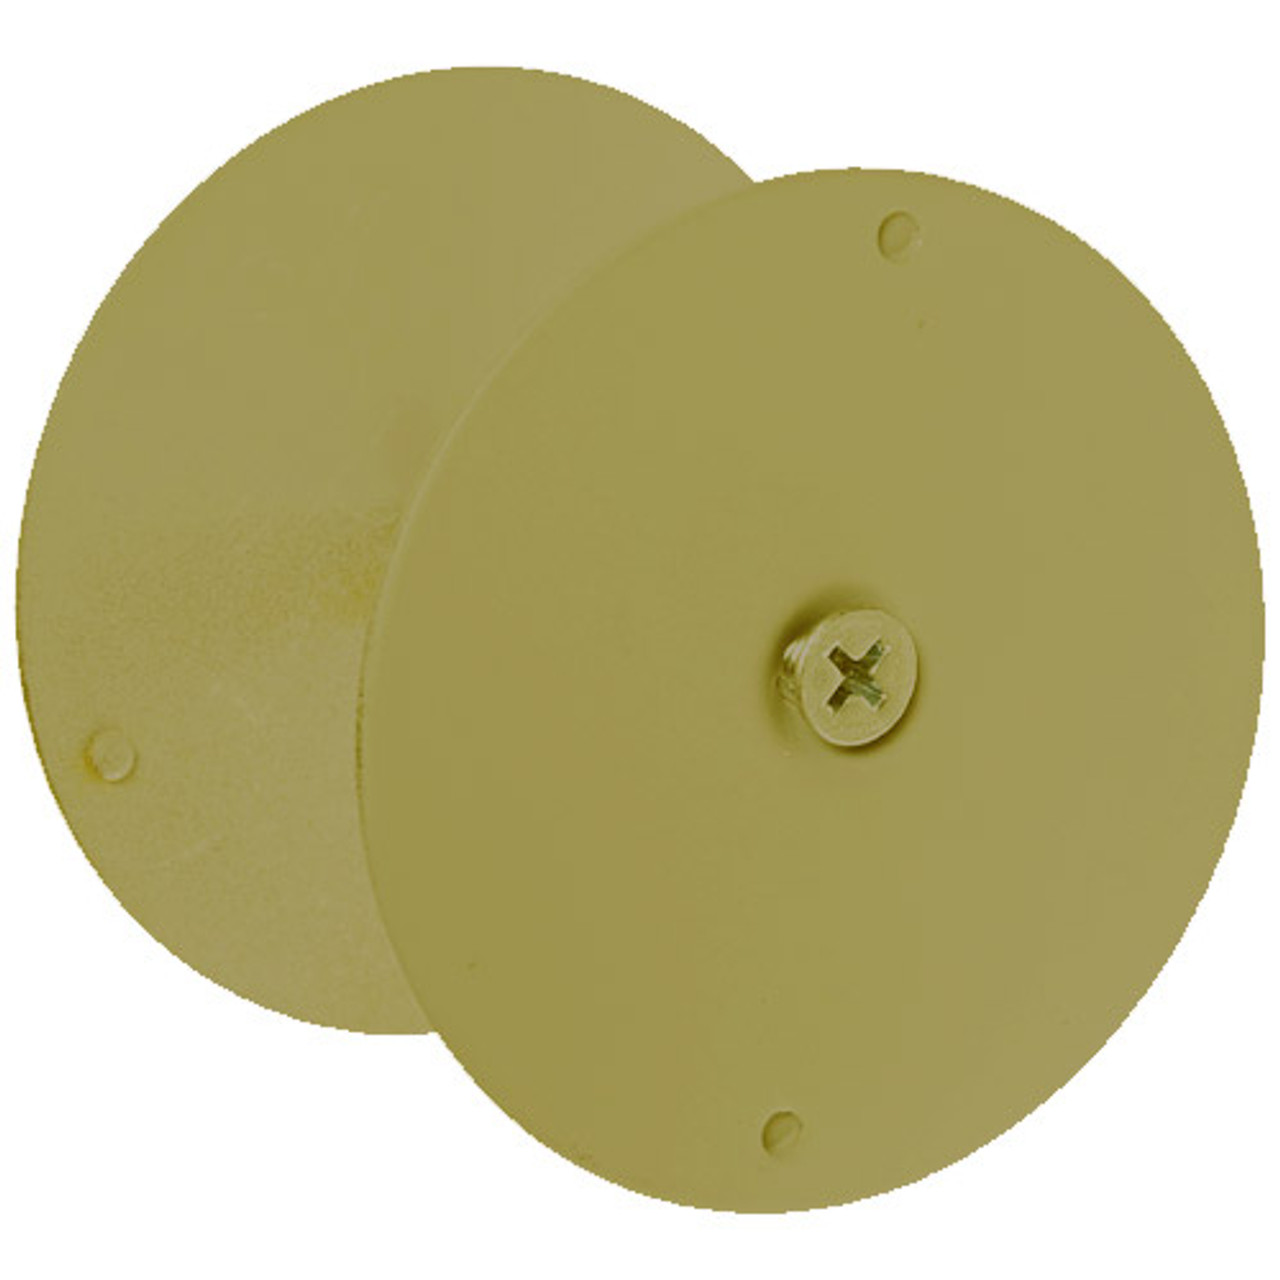 BF-161-DU Don Jo Hole Filler Plate in Duranodic Finish